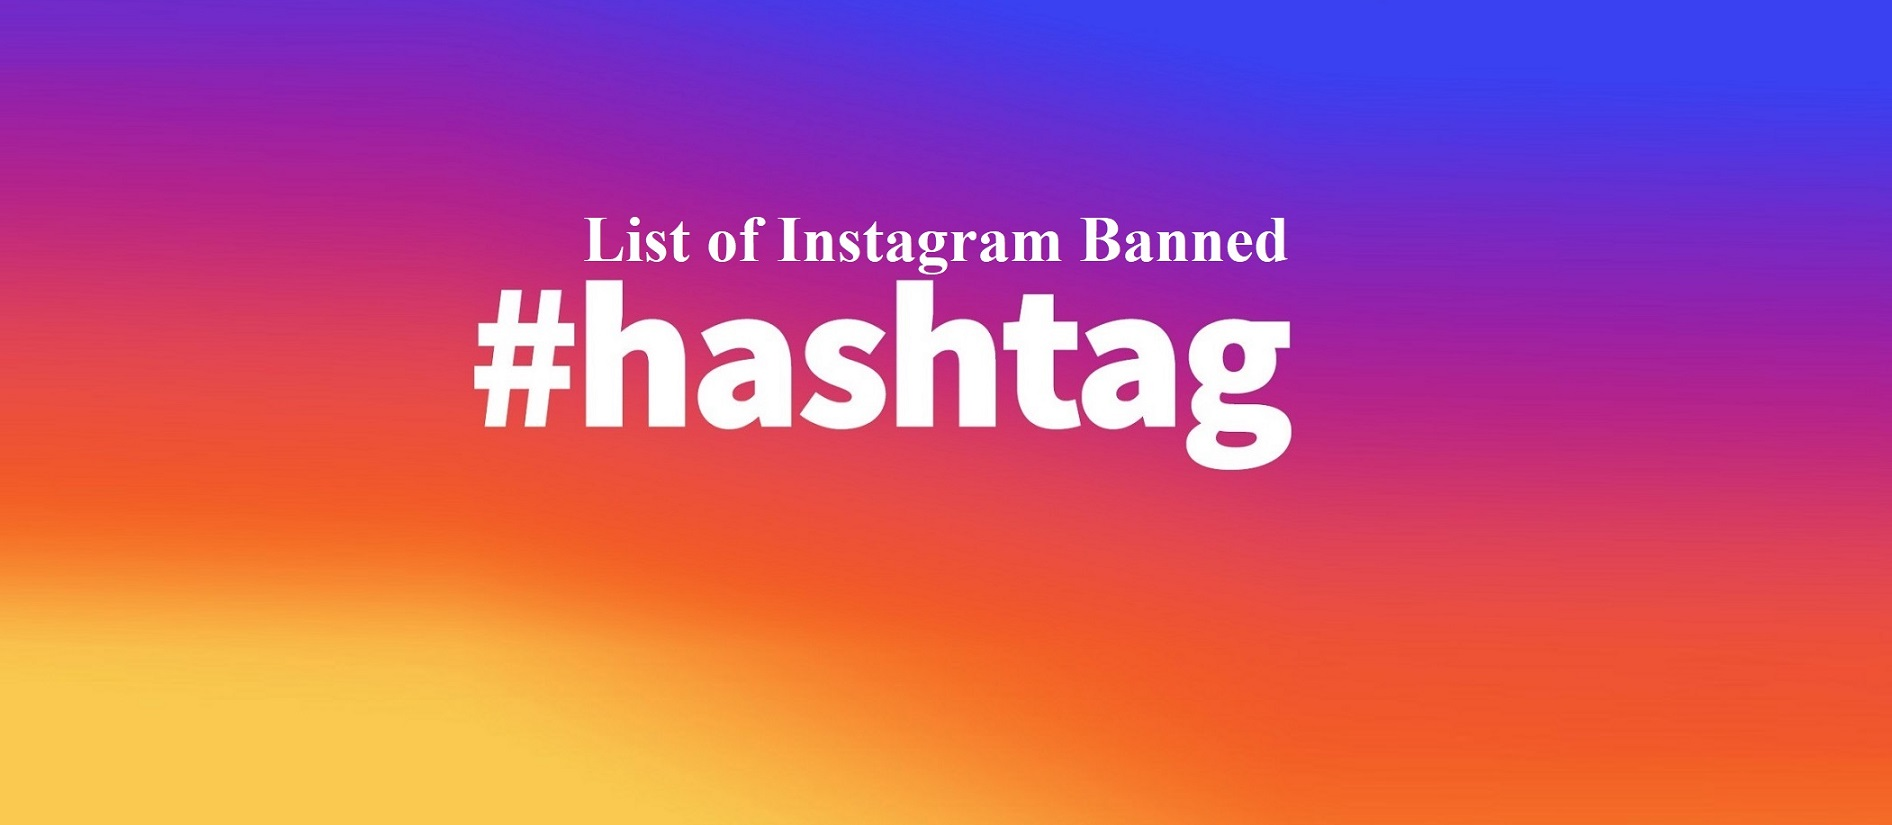 List of Instagram Banned Hashtags